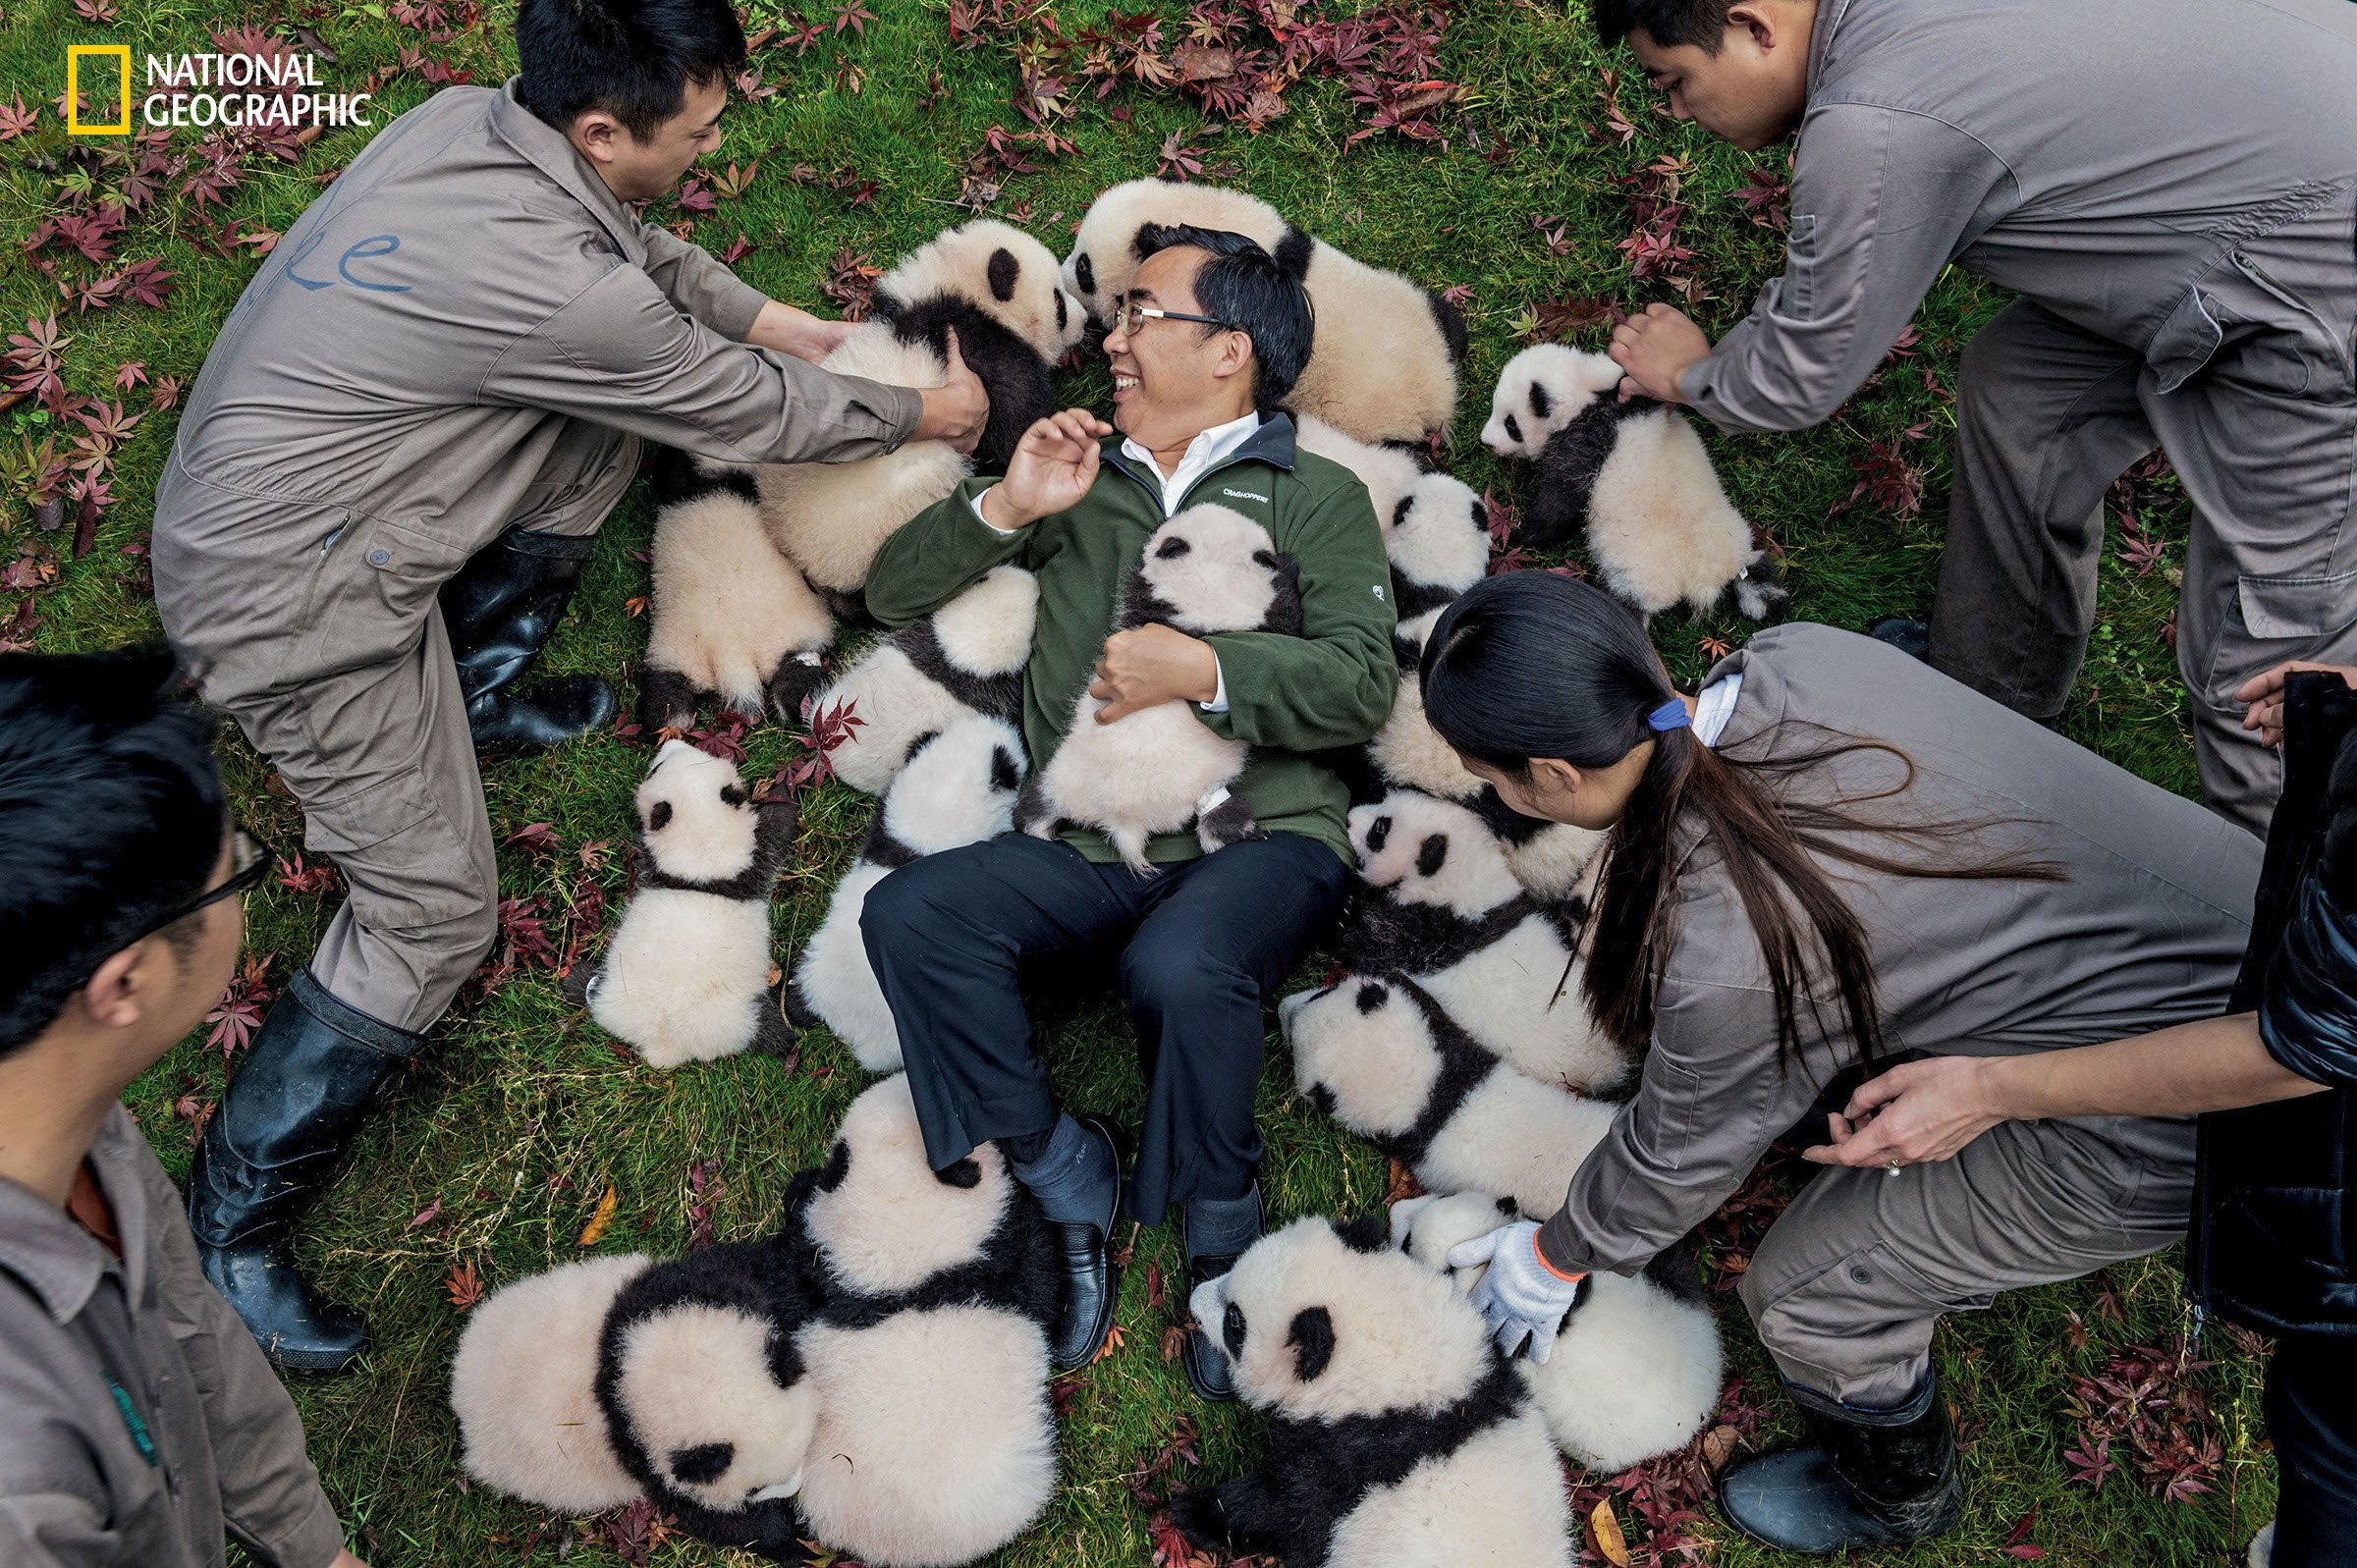 Painfully Adorable Panda Cub Photos Will Make You Want One Of Your